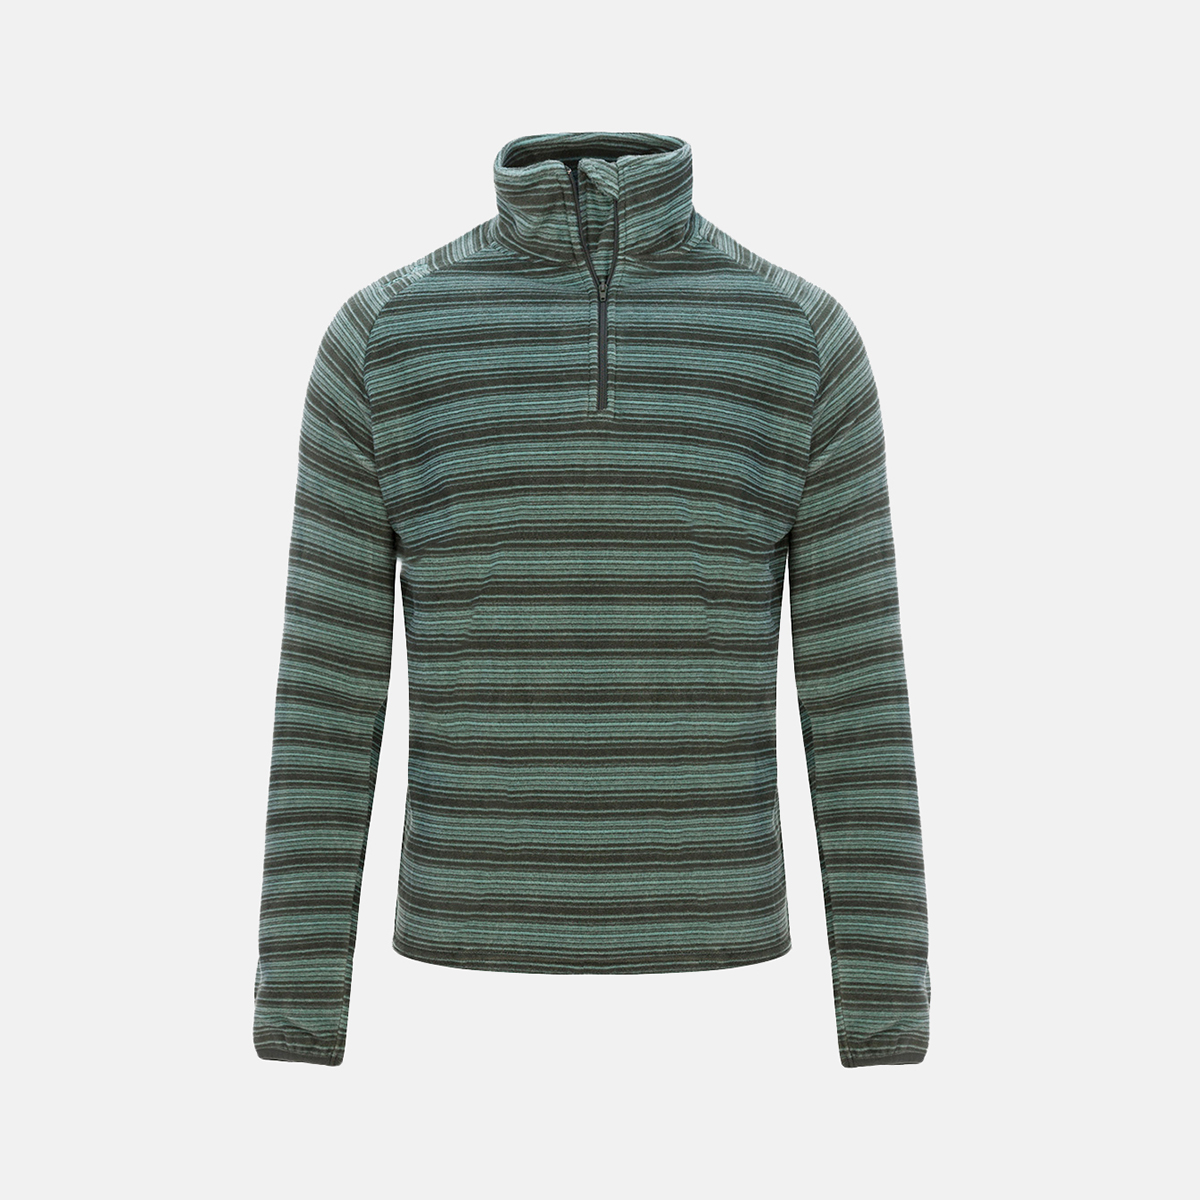 SUTTON II DARK GREEN MAN'S